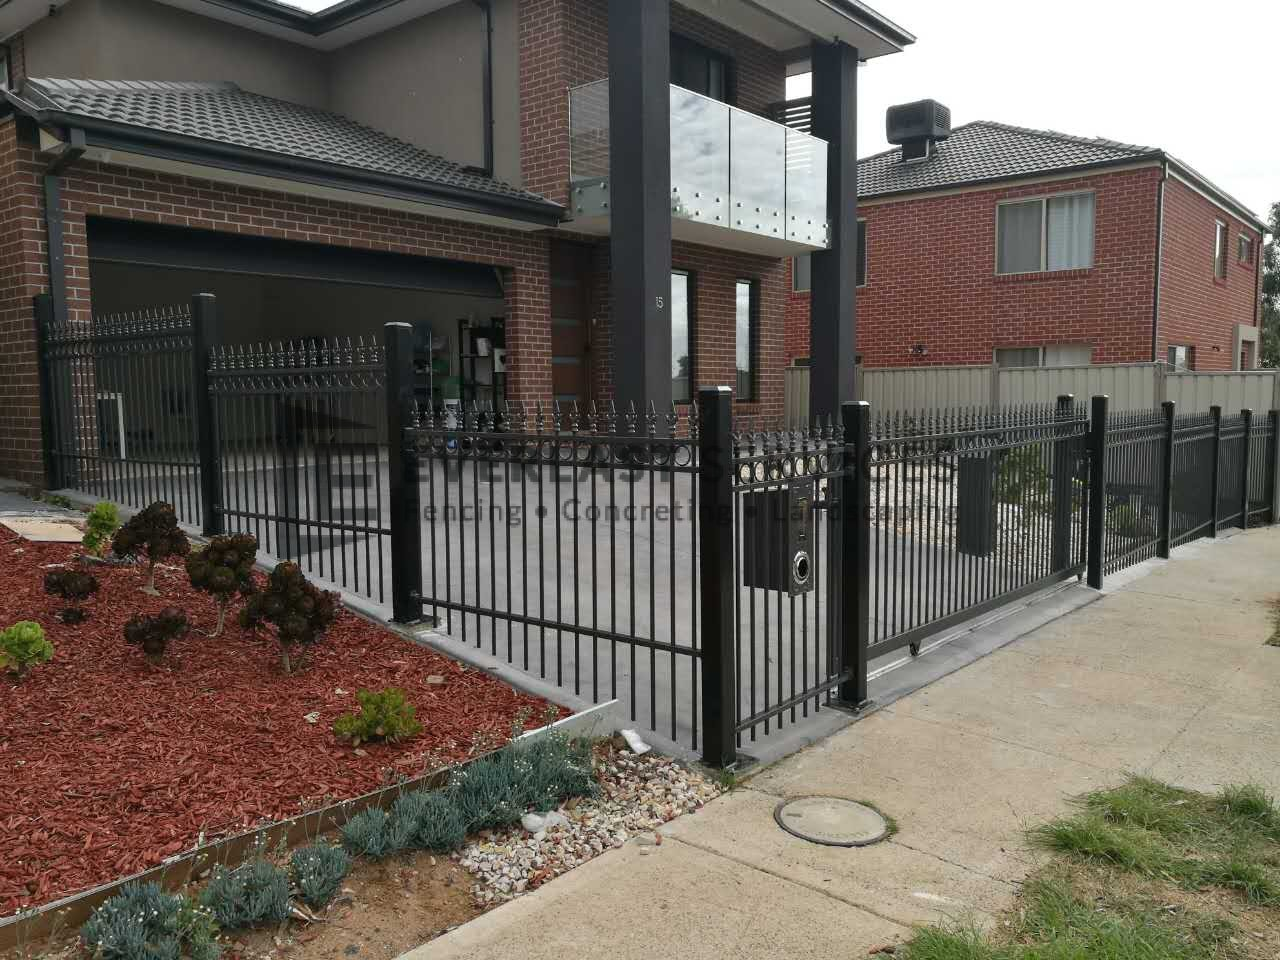 SF130 - Oxley Ring and Spear Fencing